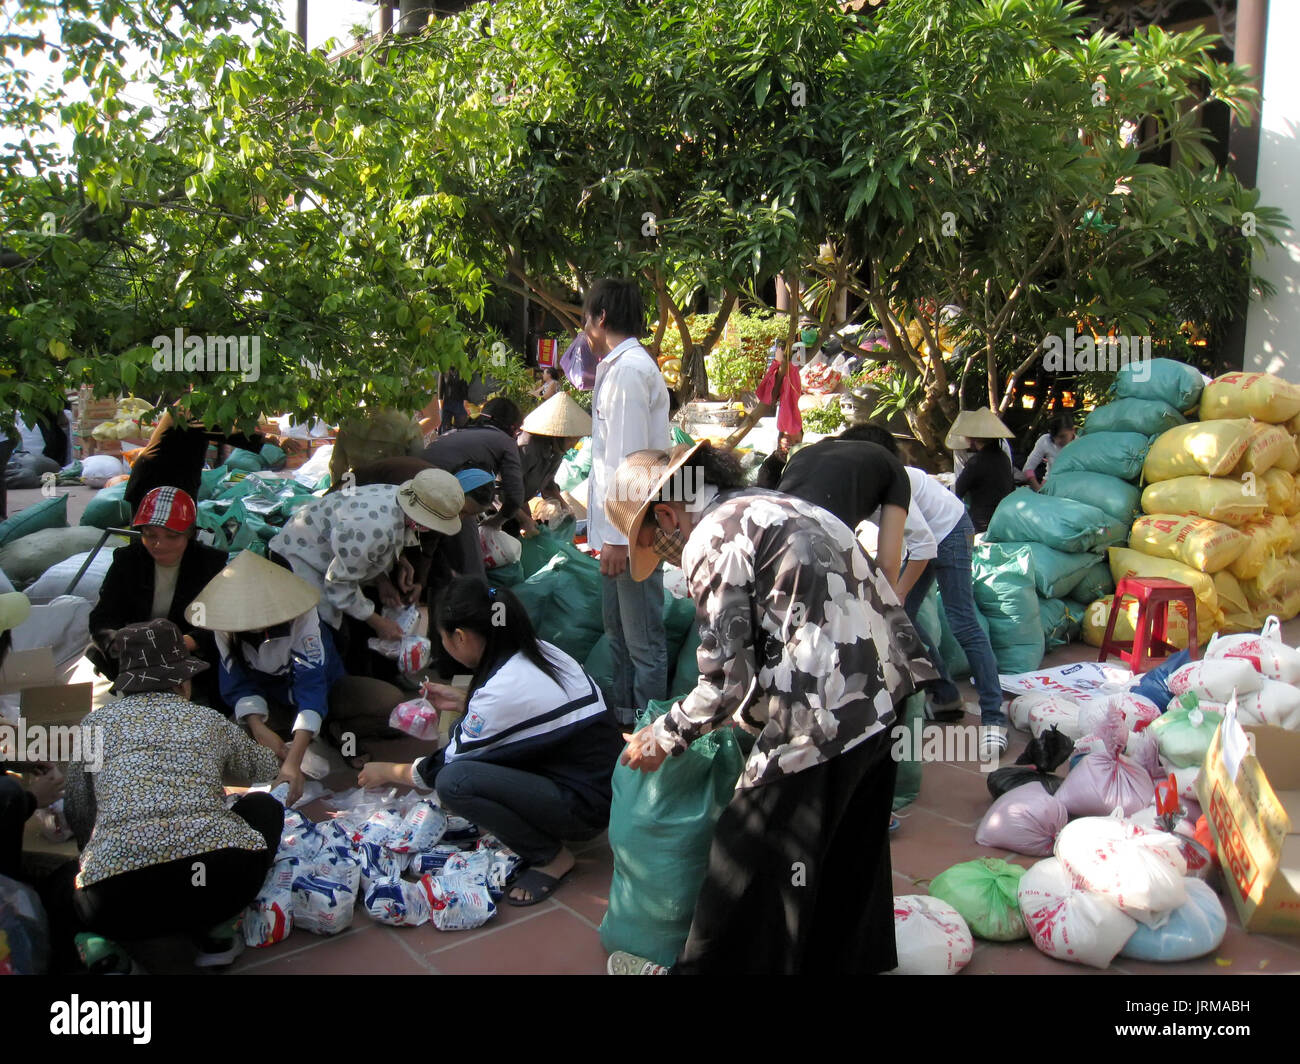 HAI DUONG, VIETNAM, September, 19: monks and disciples contribute food to charity for the poor on September, 19, 2013 in Hai Duong, Vietnam - Stock Image